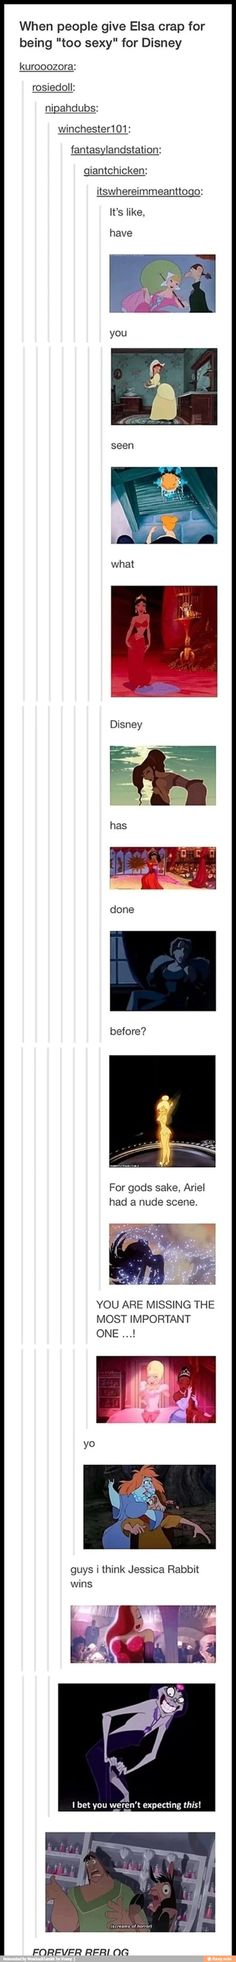 Lol oh Disney